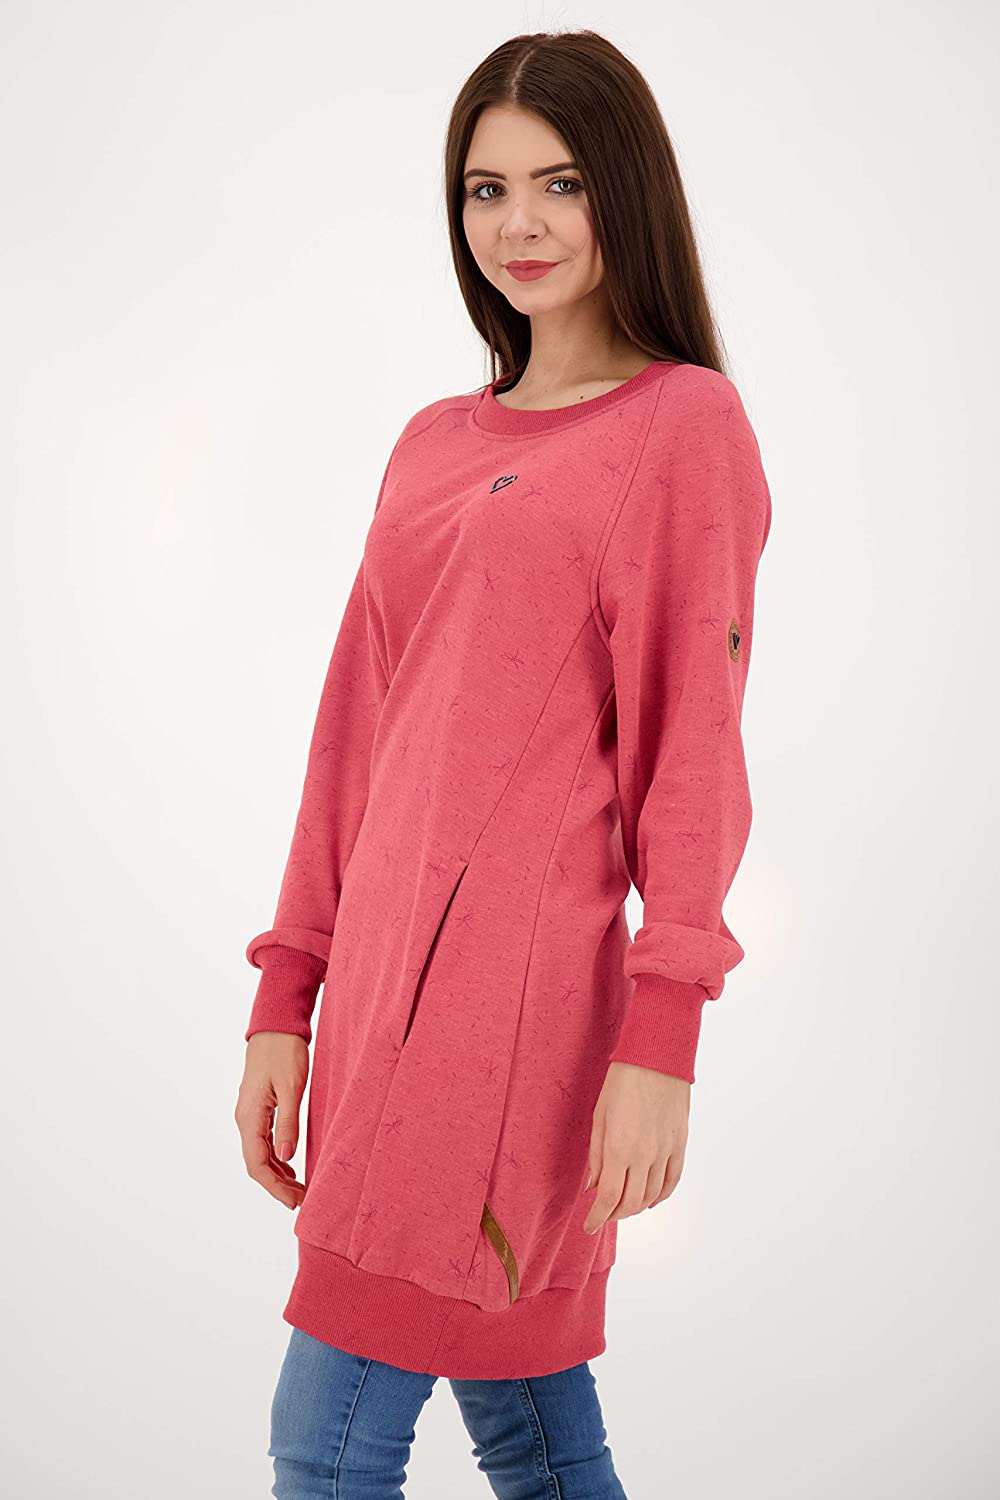 ALIFE and Kickin DeliaAK Sweatdress Damen Sweatkleid Cranberry